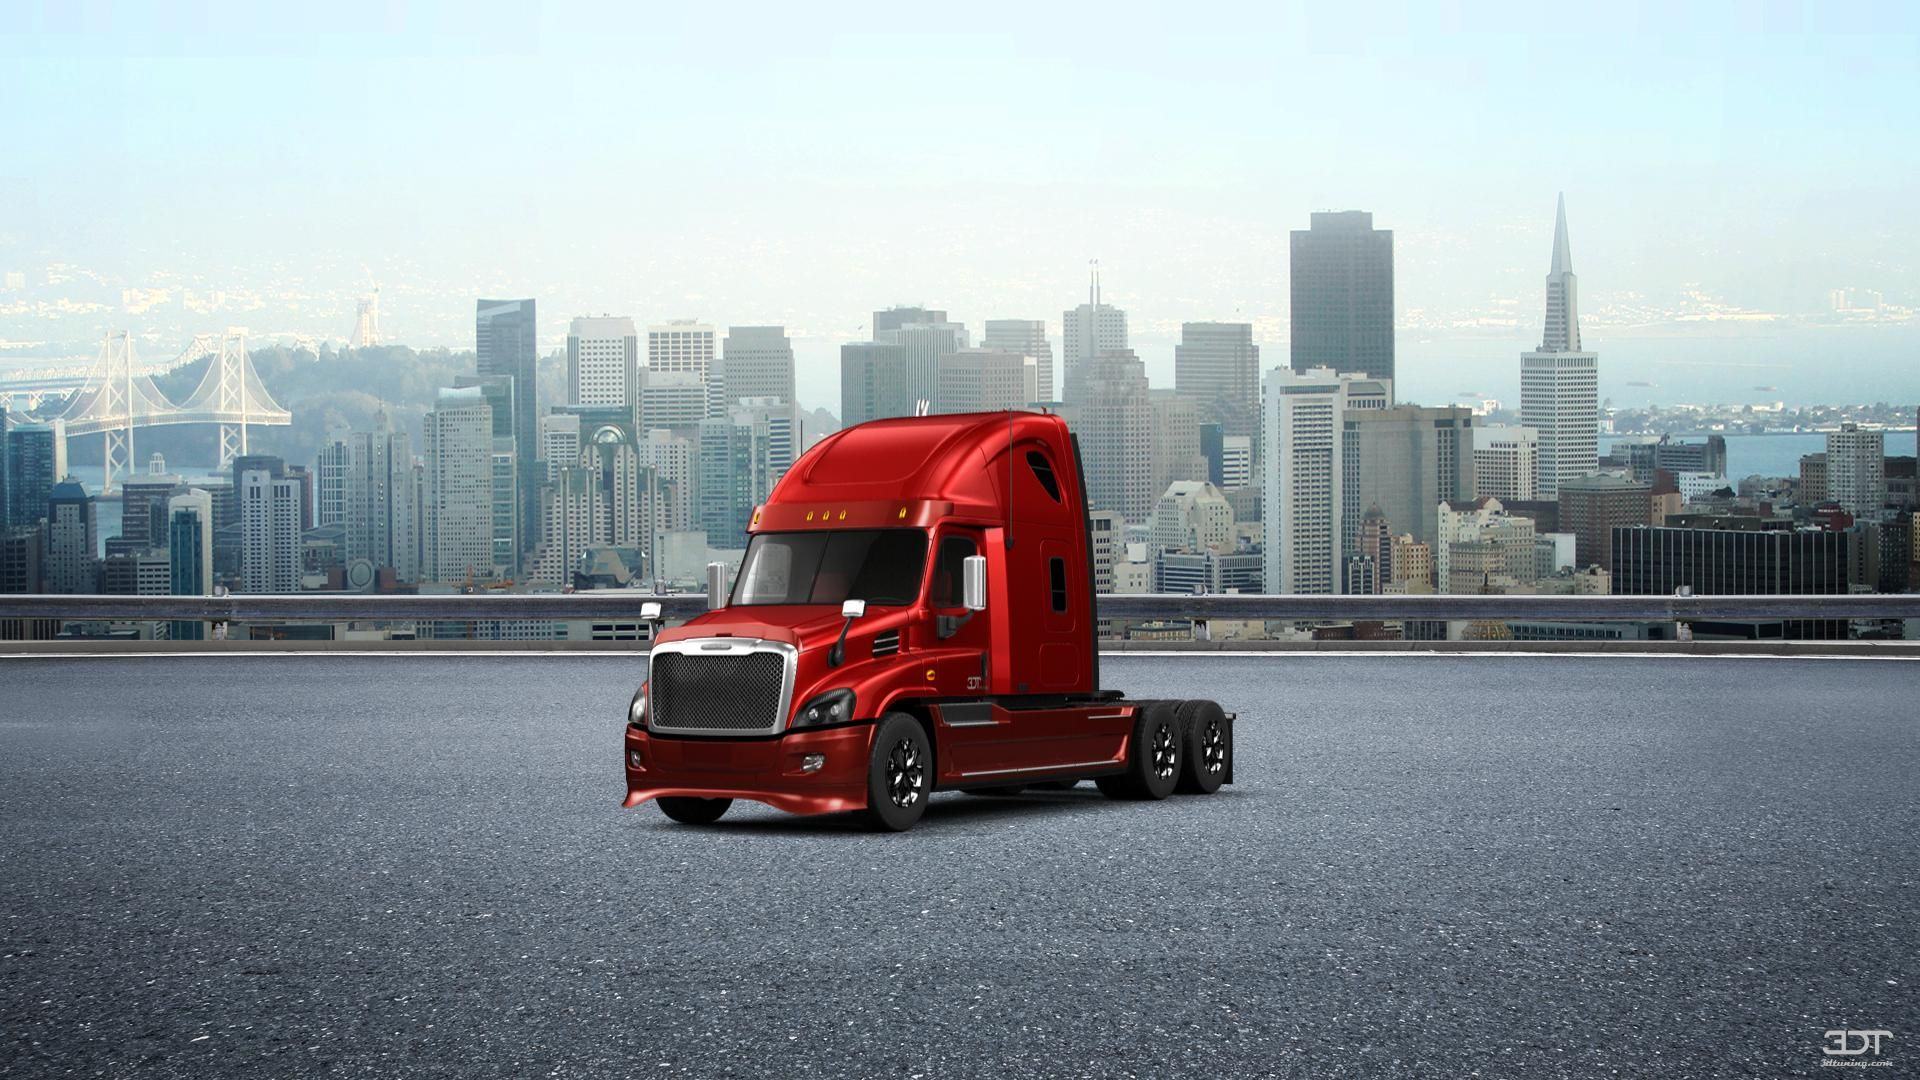 Checkout My Tuning Freightliner Cascadia 2011 At 3dtuning 3dtuning Tuning Freightliner Freightliner Cascadia Cascadia